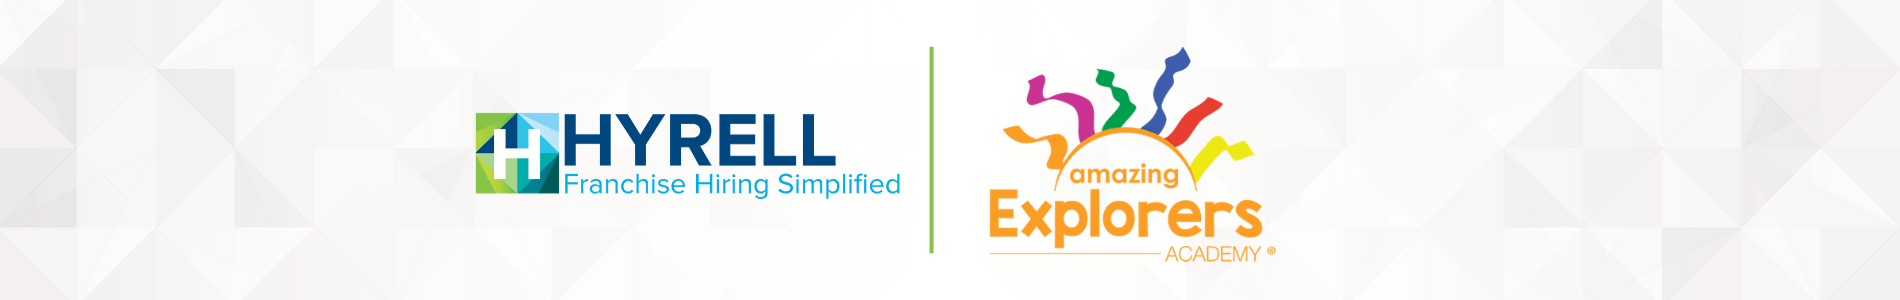 PR | The Amazing Explorers Academy Recruits Hyrell with Latest Partnership